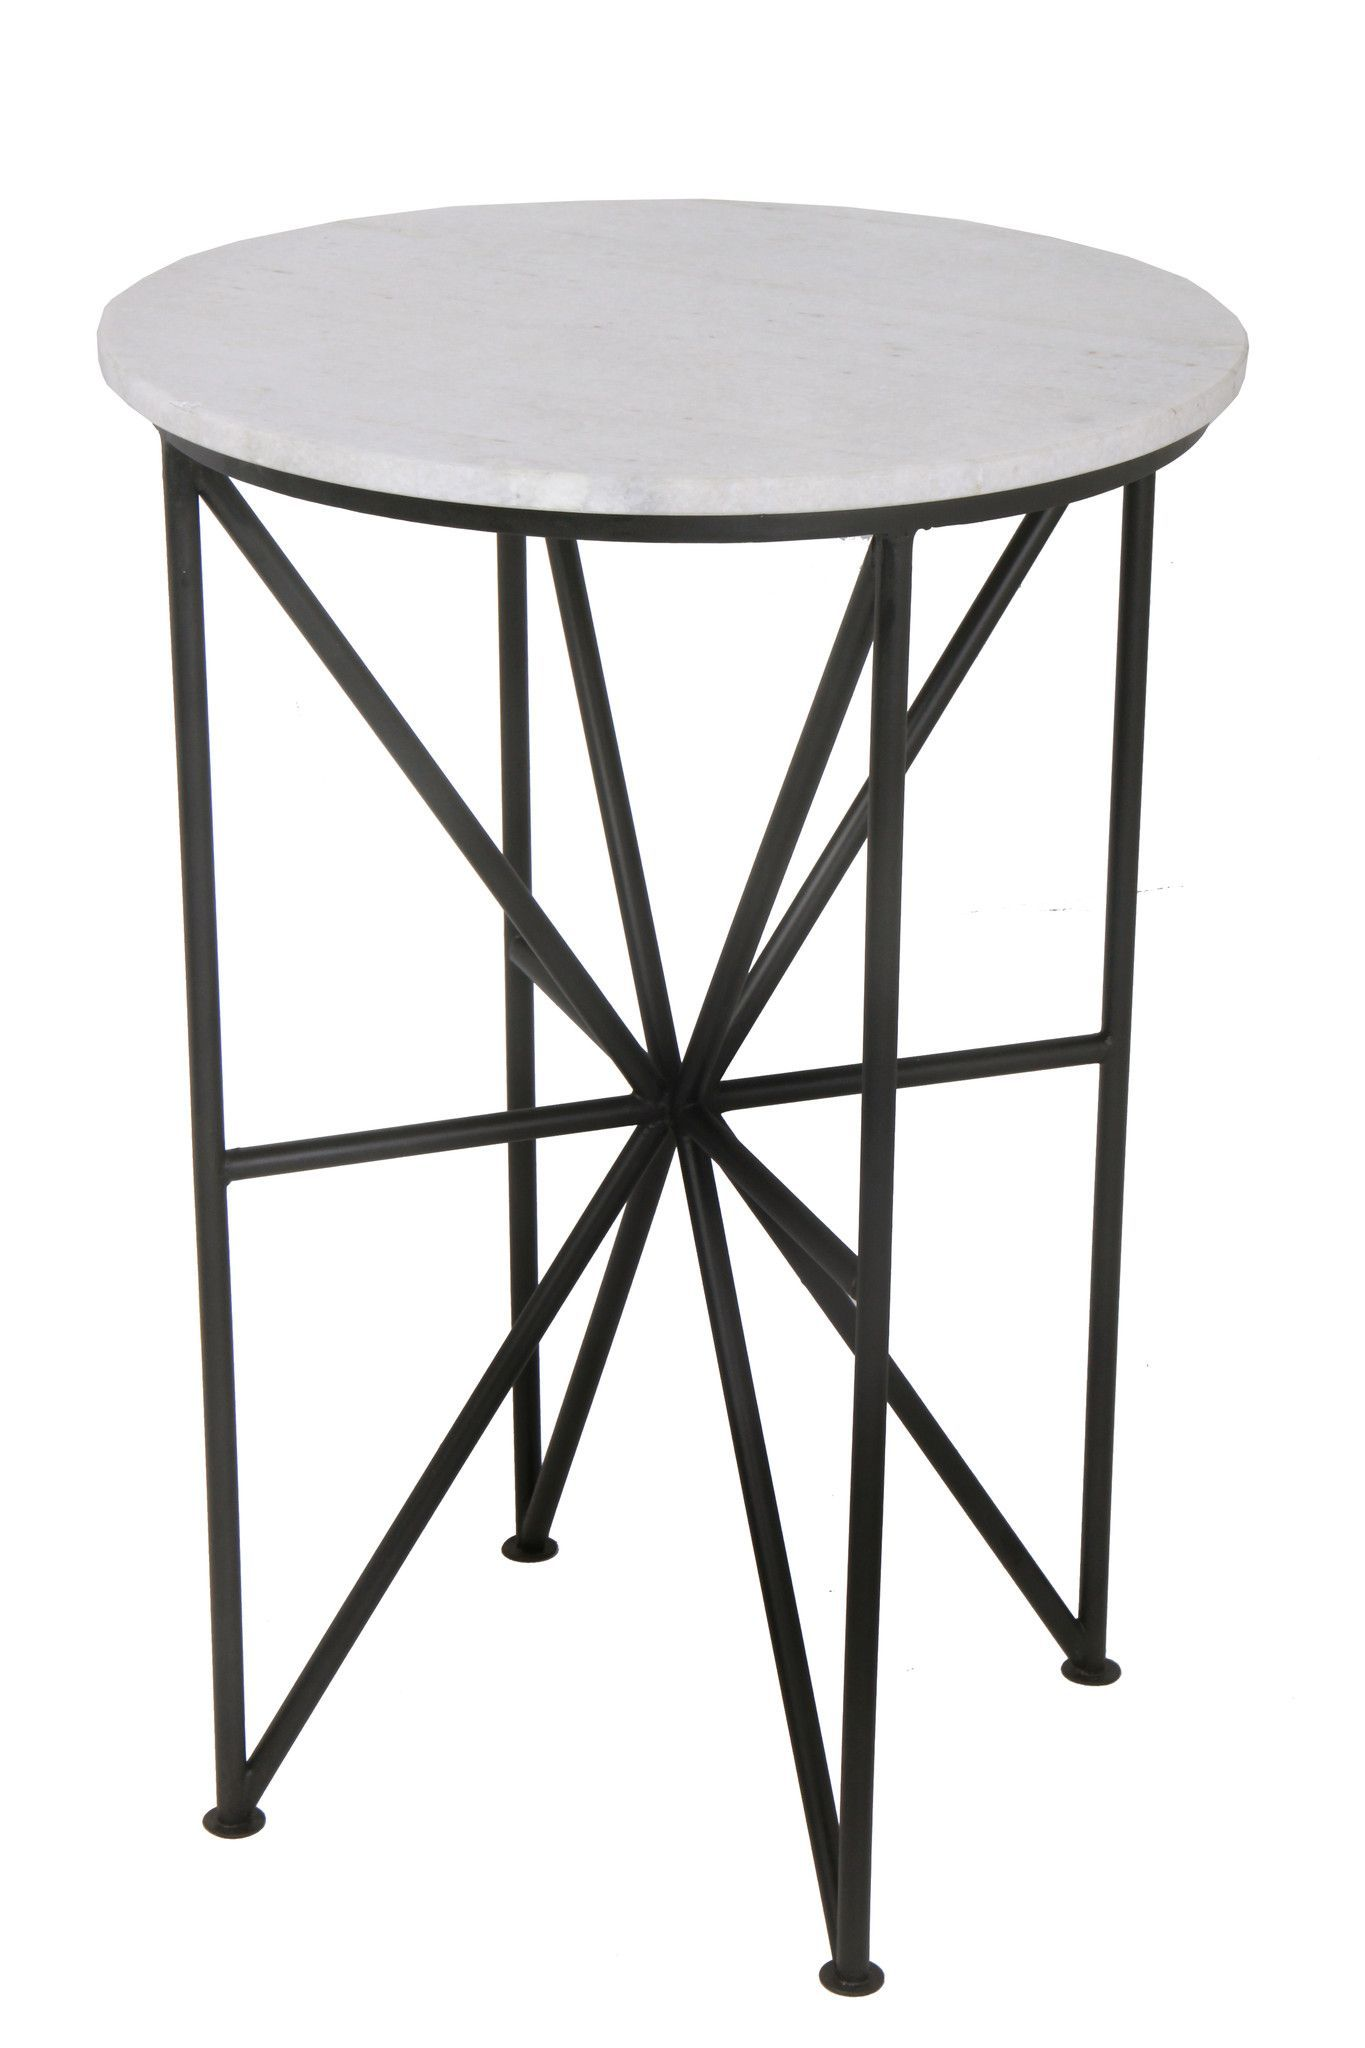 quadrant glass accent table black products collections pier curtains clearance drum small telephone stand homesense coffee west elm bliss sofa mosaic outdoor and chairs matching